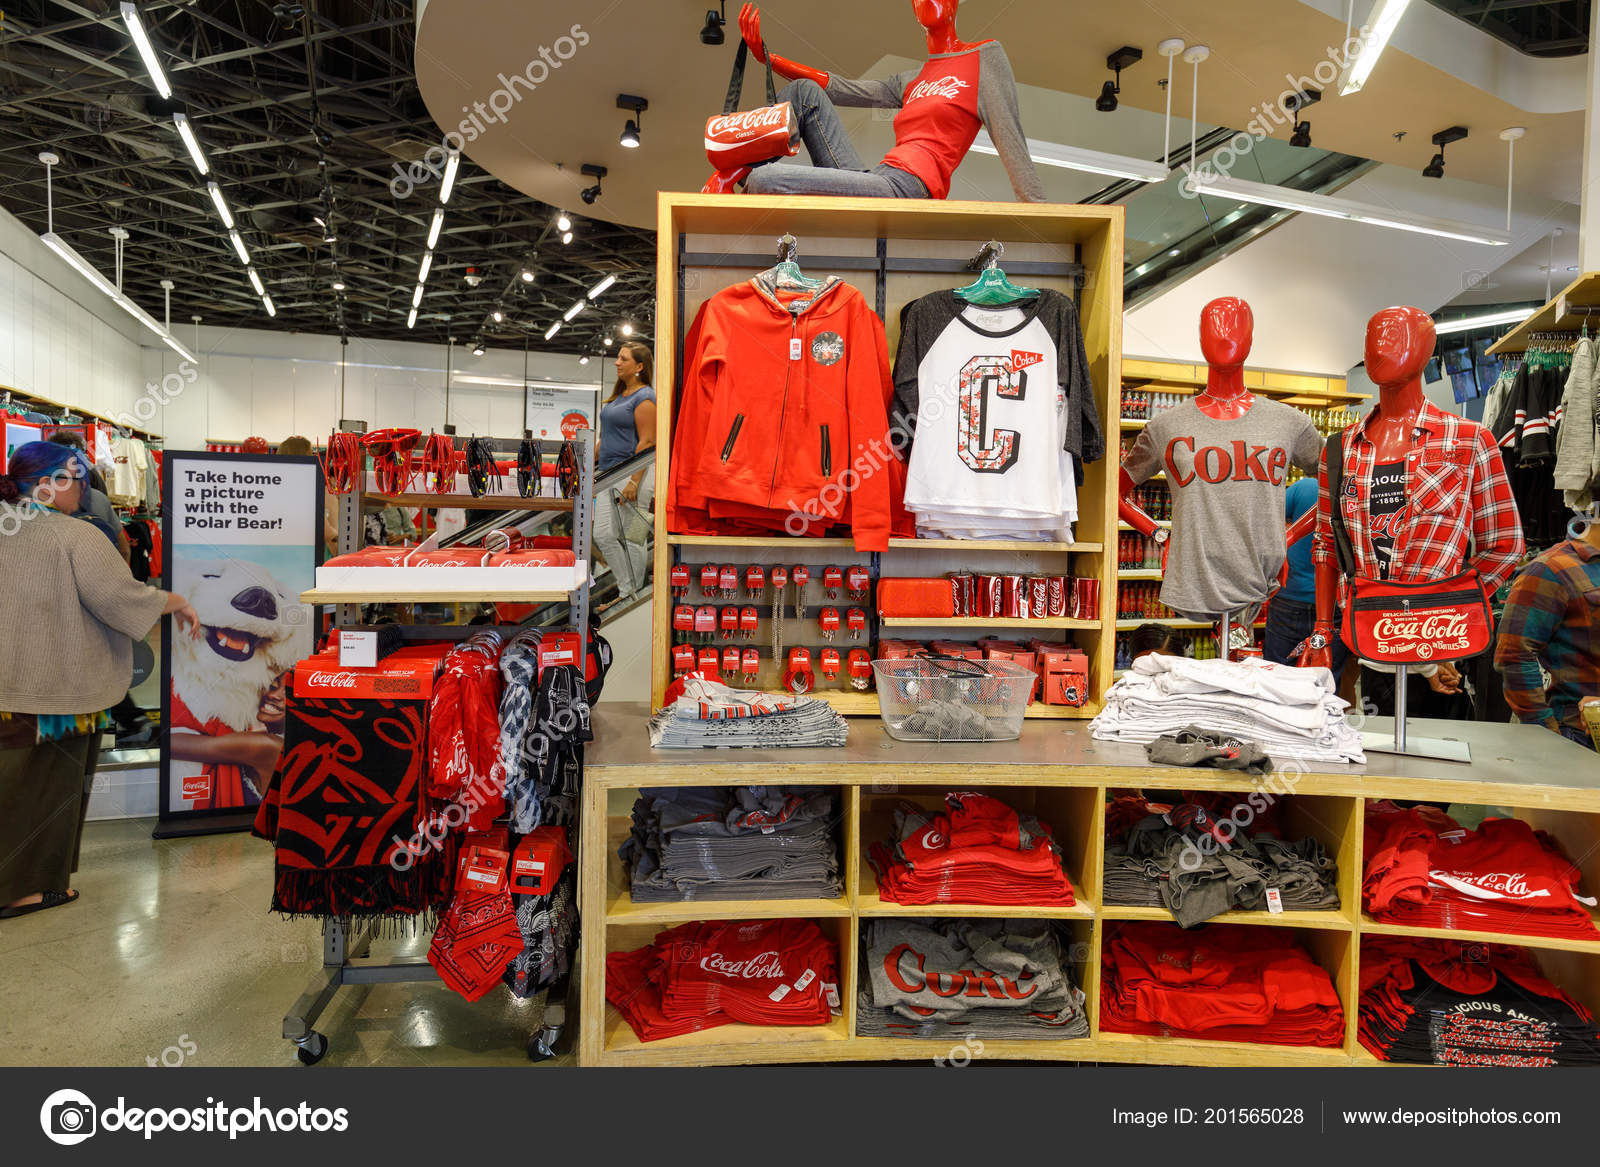 Store En Stock Las Vegas Nevada May 2018 Coca Cola Store Las Vegas Stock